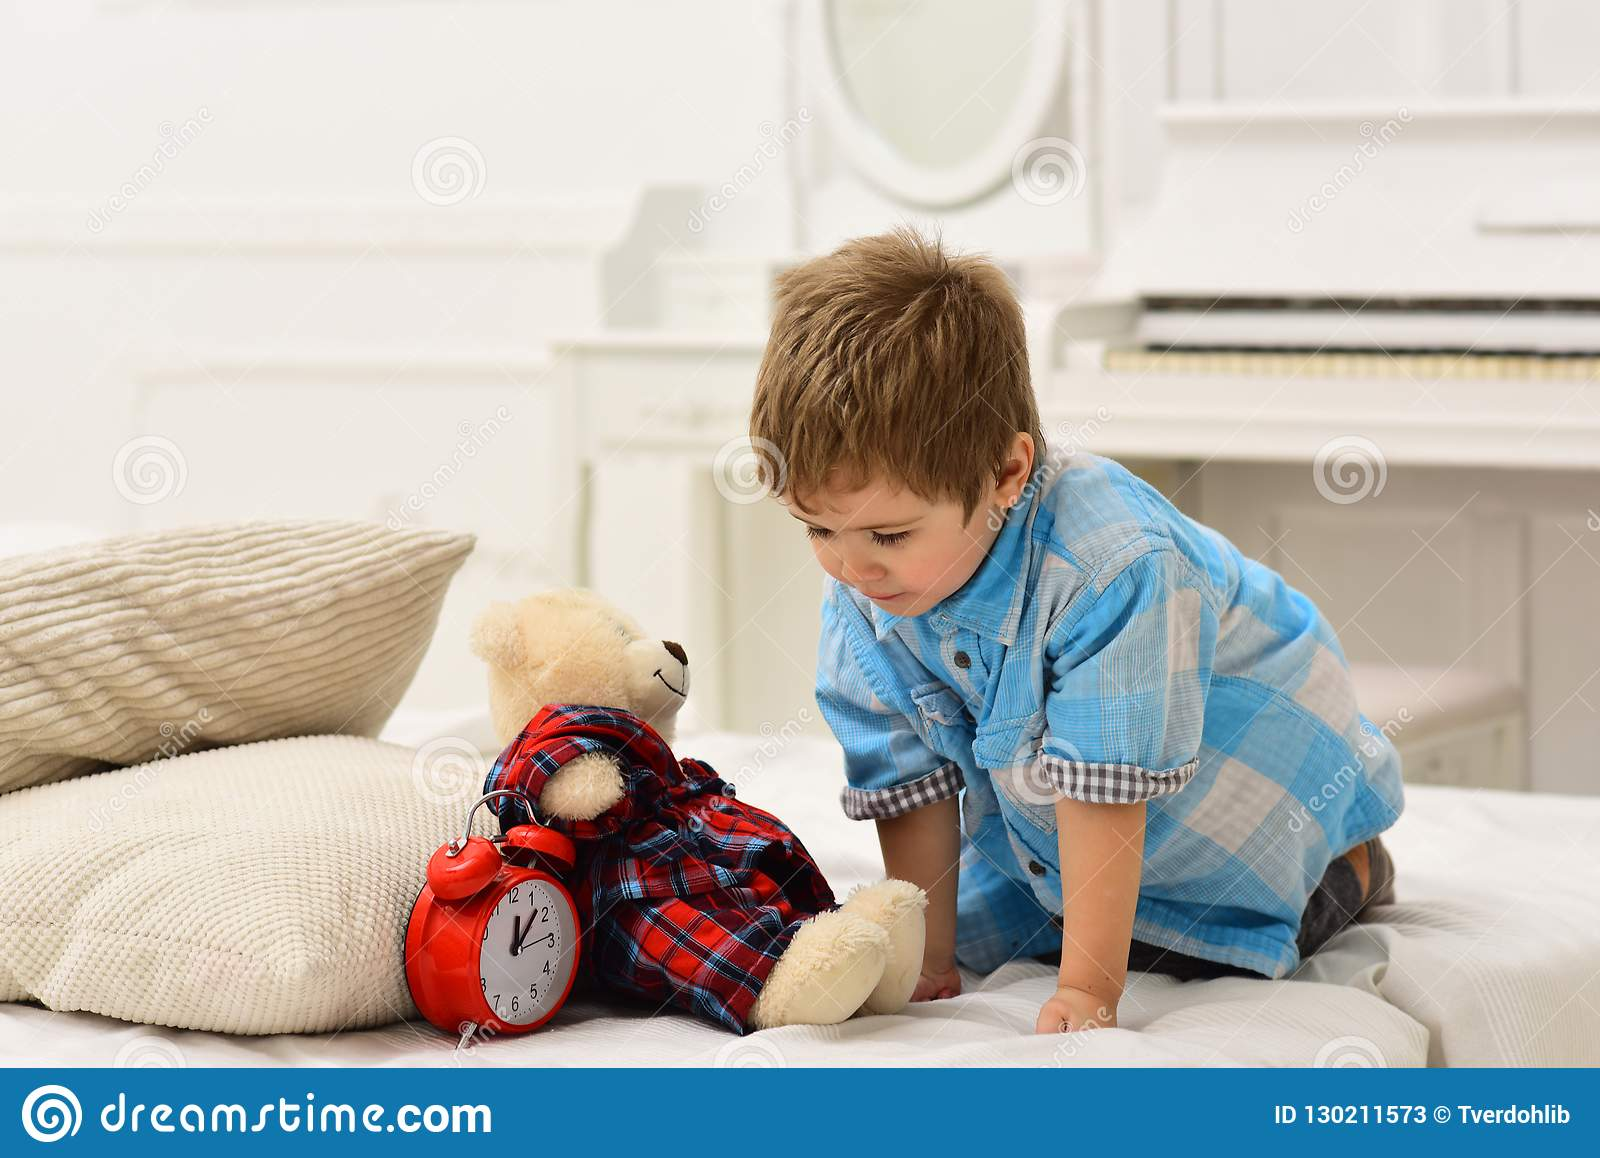 Child play toys. little boy play at home. happy family and childrens day. happy childhood. Amazing day. Care and